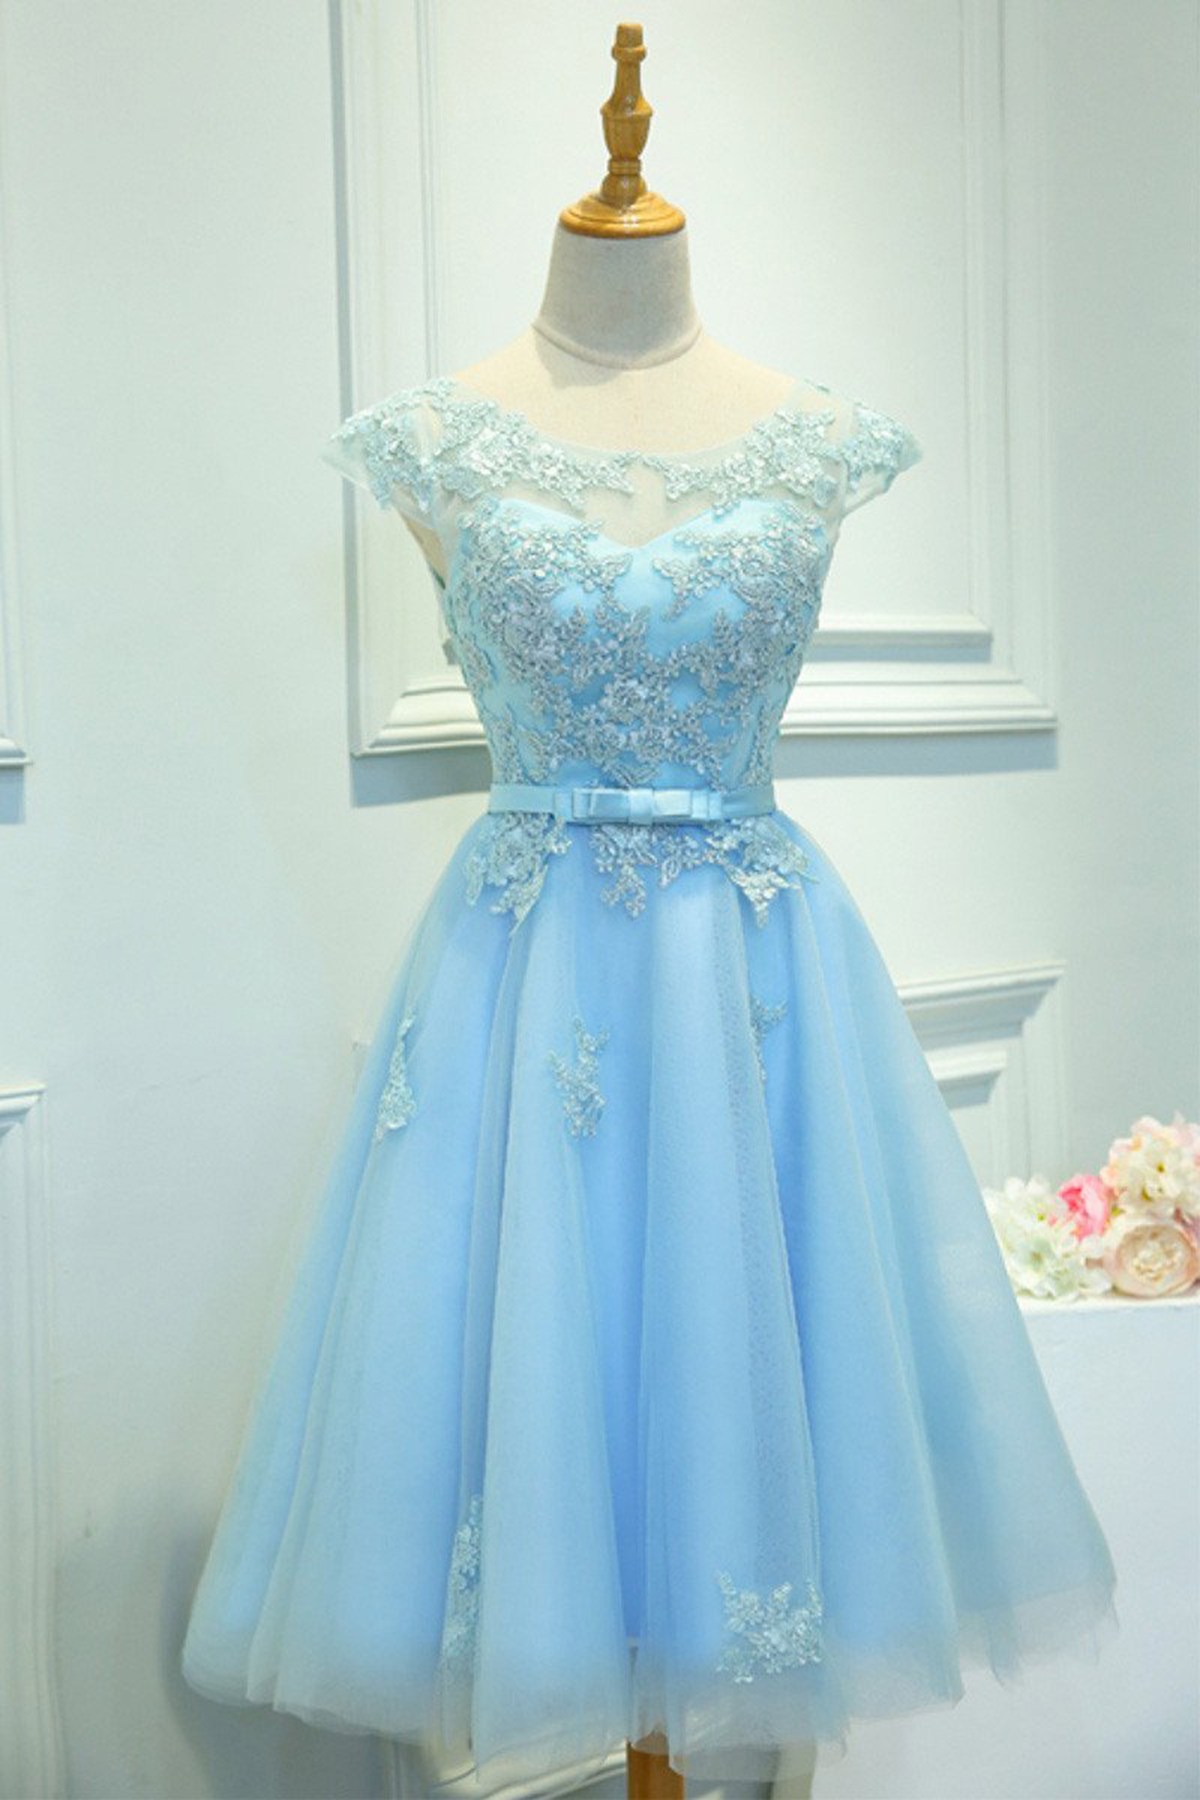 631fcac5f5ec Cute ice blue lace short prom dress with bow